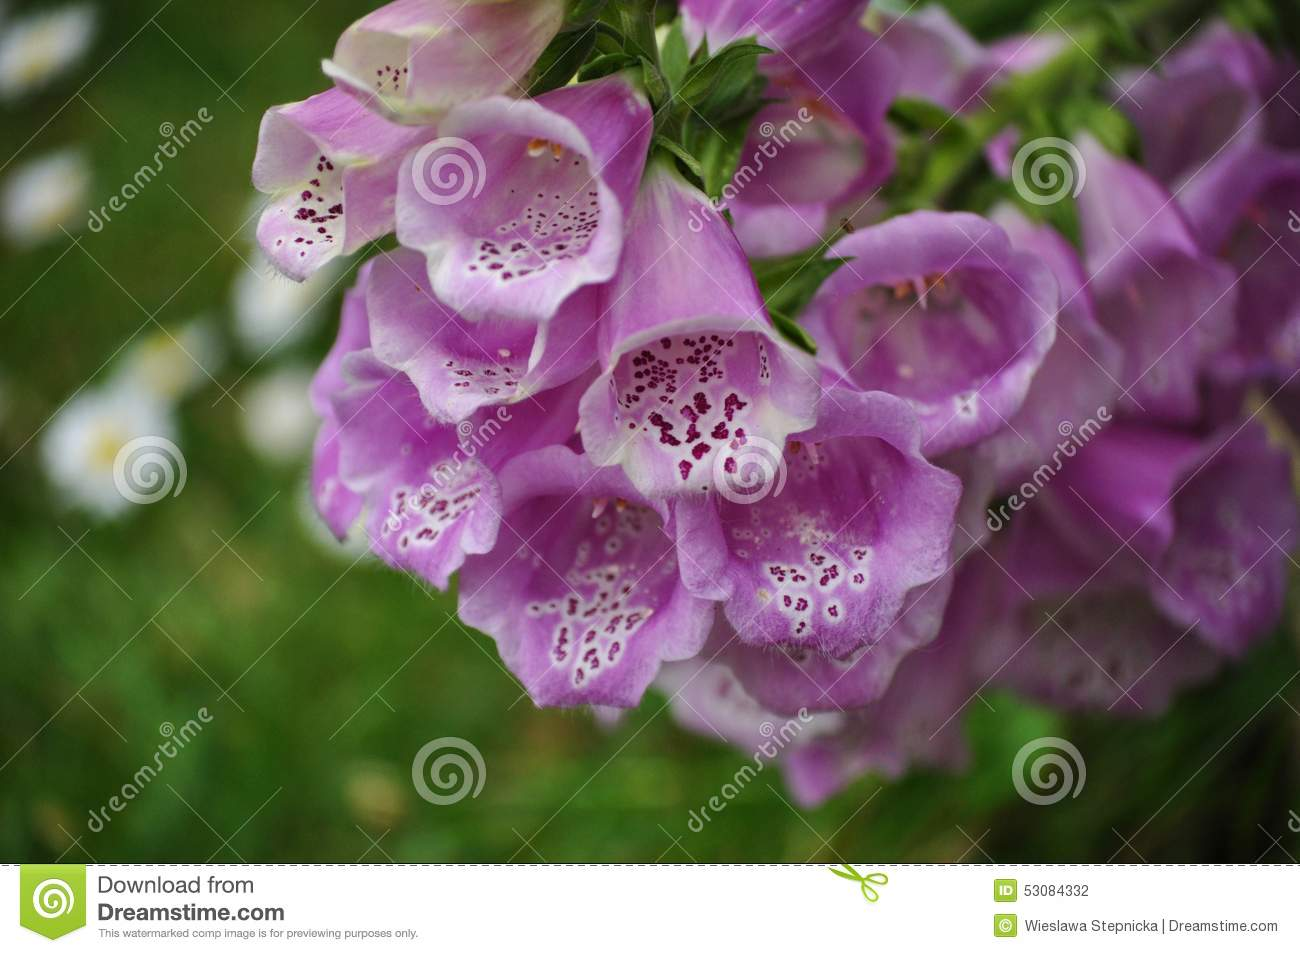 Inside Plants Digitalis Purpurea Bell Shaped Flowers Stock Photo